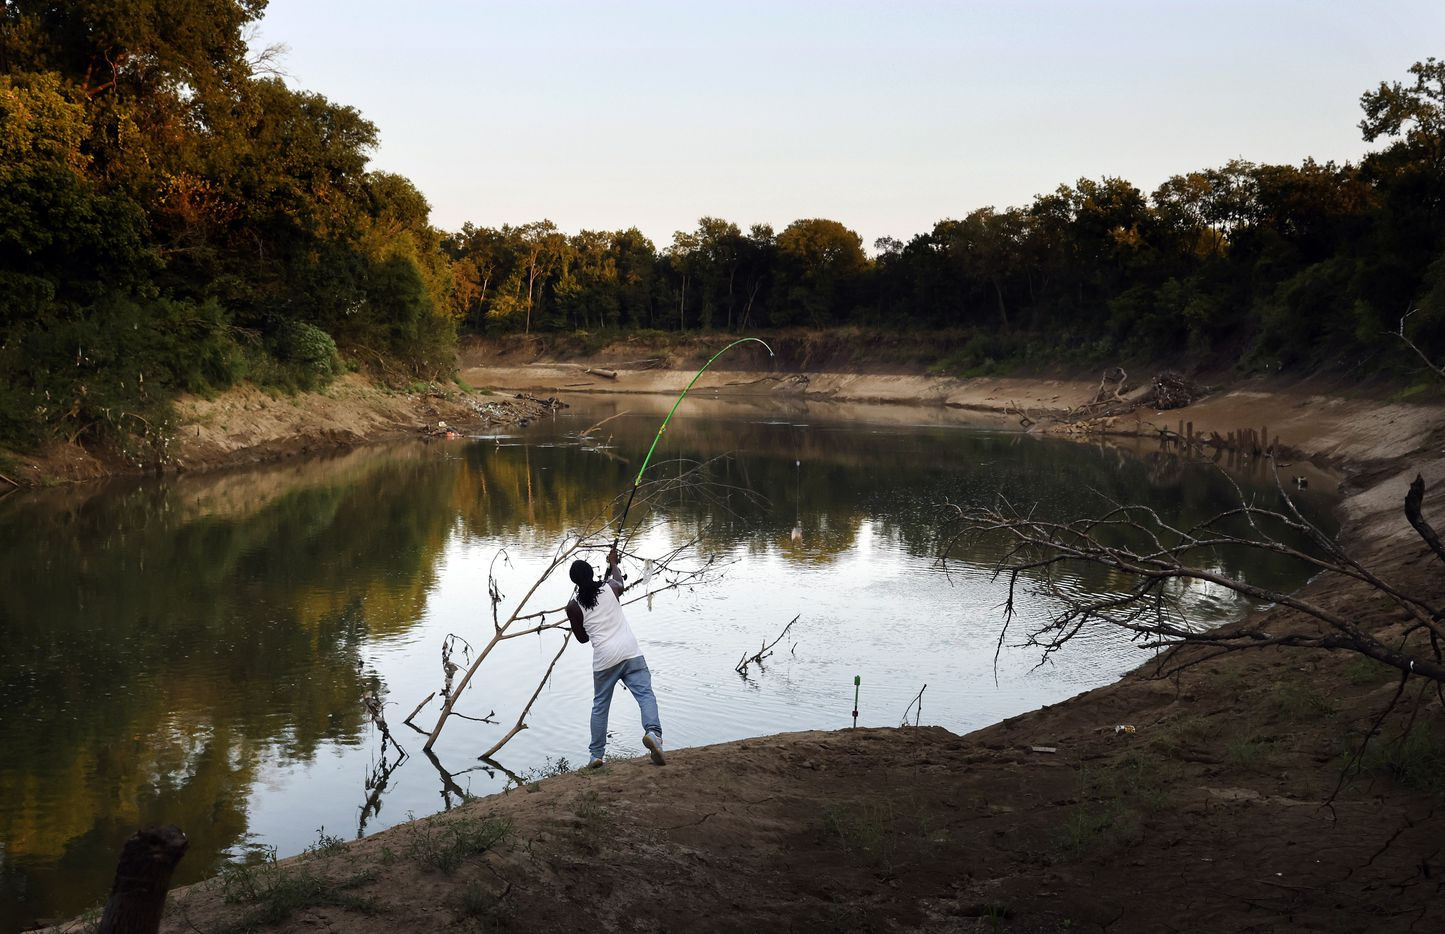 Odell Allen cast his line in hopes of reeling in an alligator gar on the Trinity River near the Great Trinity Forest Way bridge in Dallas, Wednesday, September 1, 2021.  Allen's viral videos of him catching 6-7 foot gars have made Dallas a popular spot for anglers all over the world who want to hook a gar. It has also led to overfishing of the native species, TPWD says. Texas Parks and Wildlife Department is adding new regulations to limit how many gar each angler can harvest in a year. Allen catches and releases his gar. (Tom Fox/The Dallas Morning News)